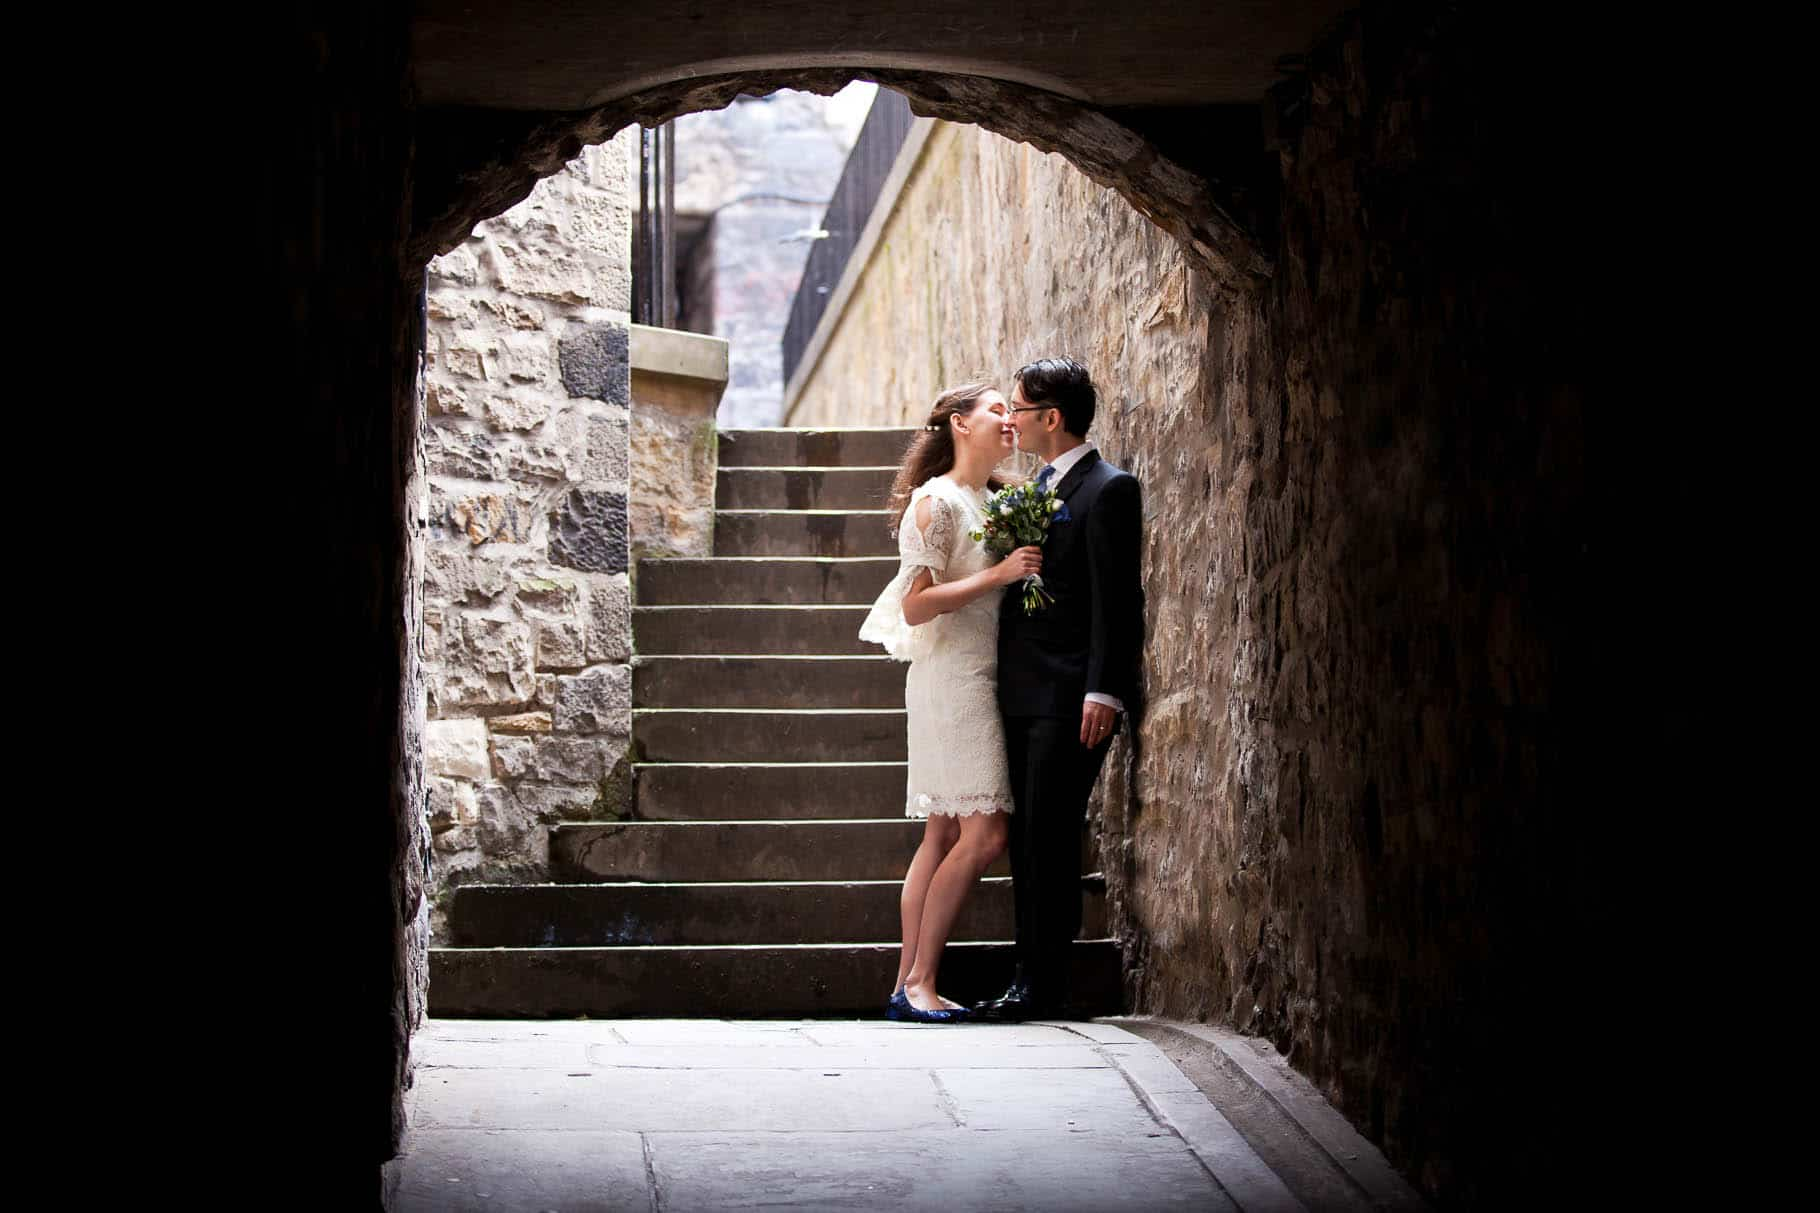 wedding photographer Scotland - photography by White Tree Photography 002